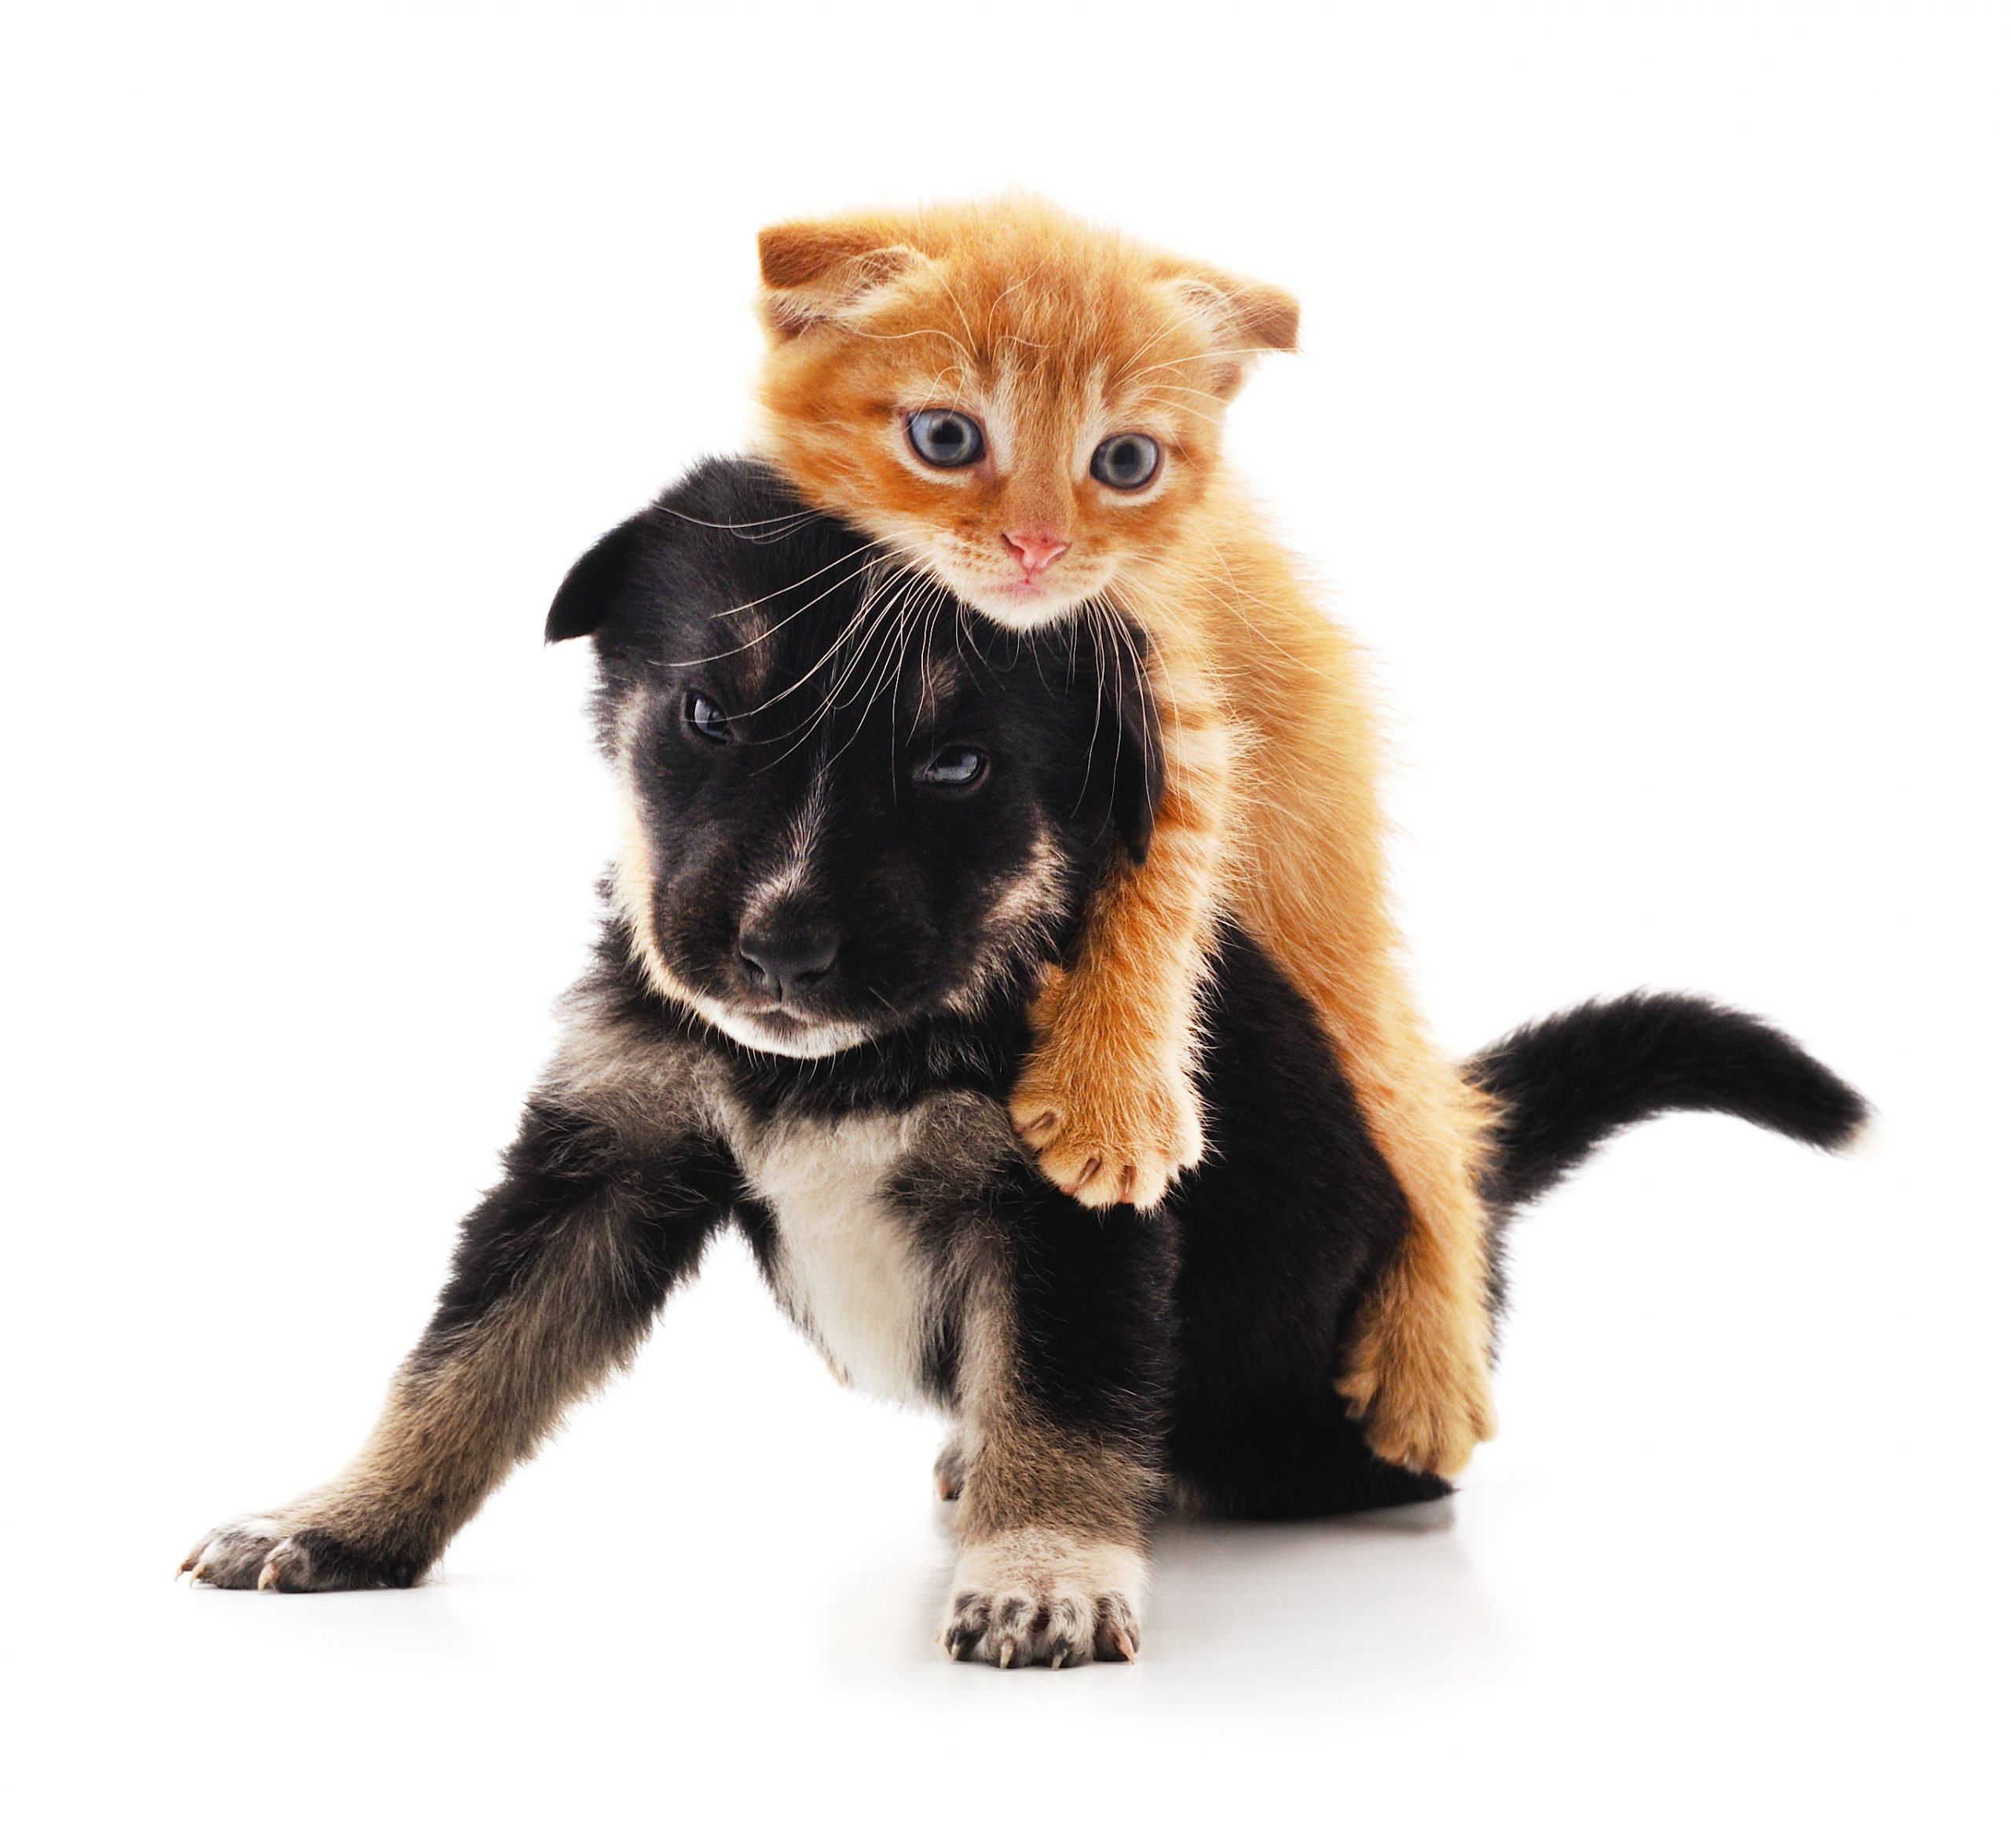 Small cat and puppy.